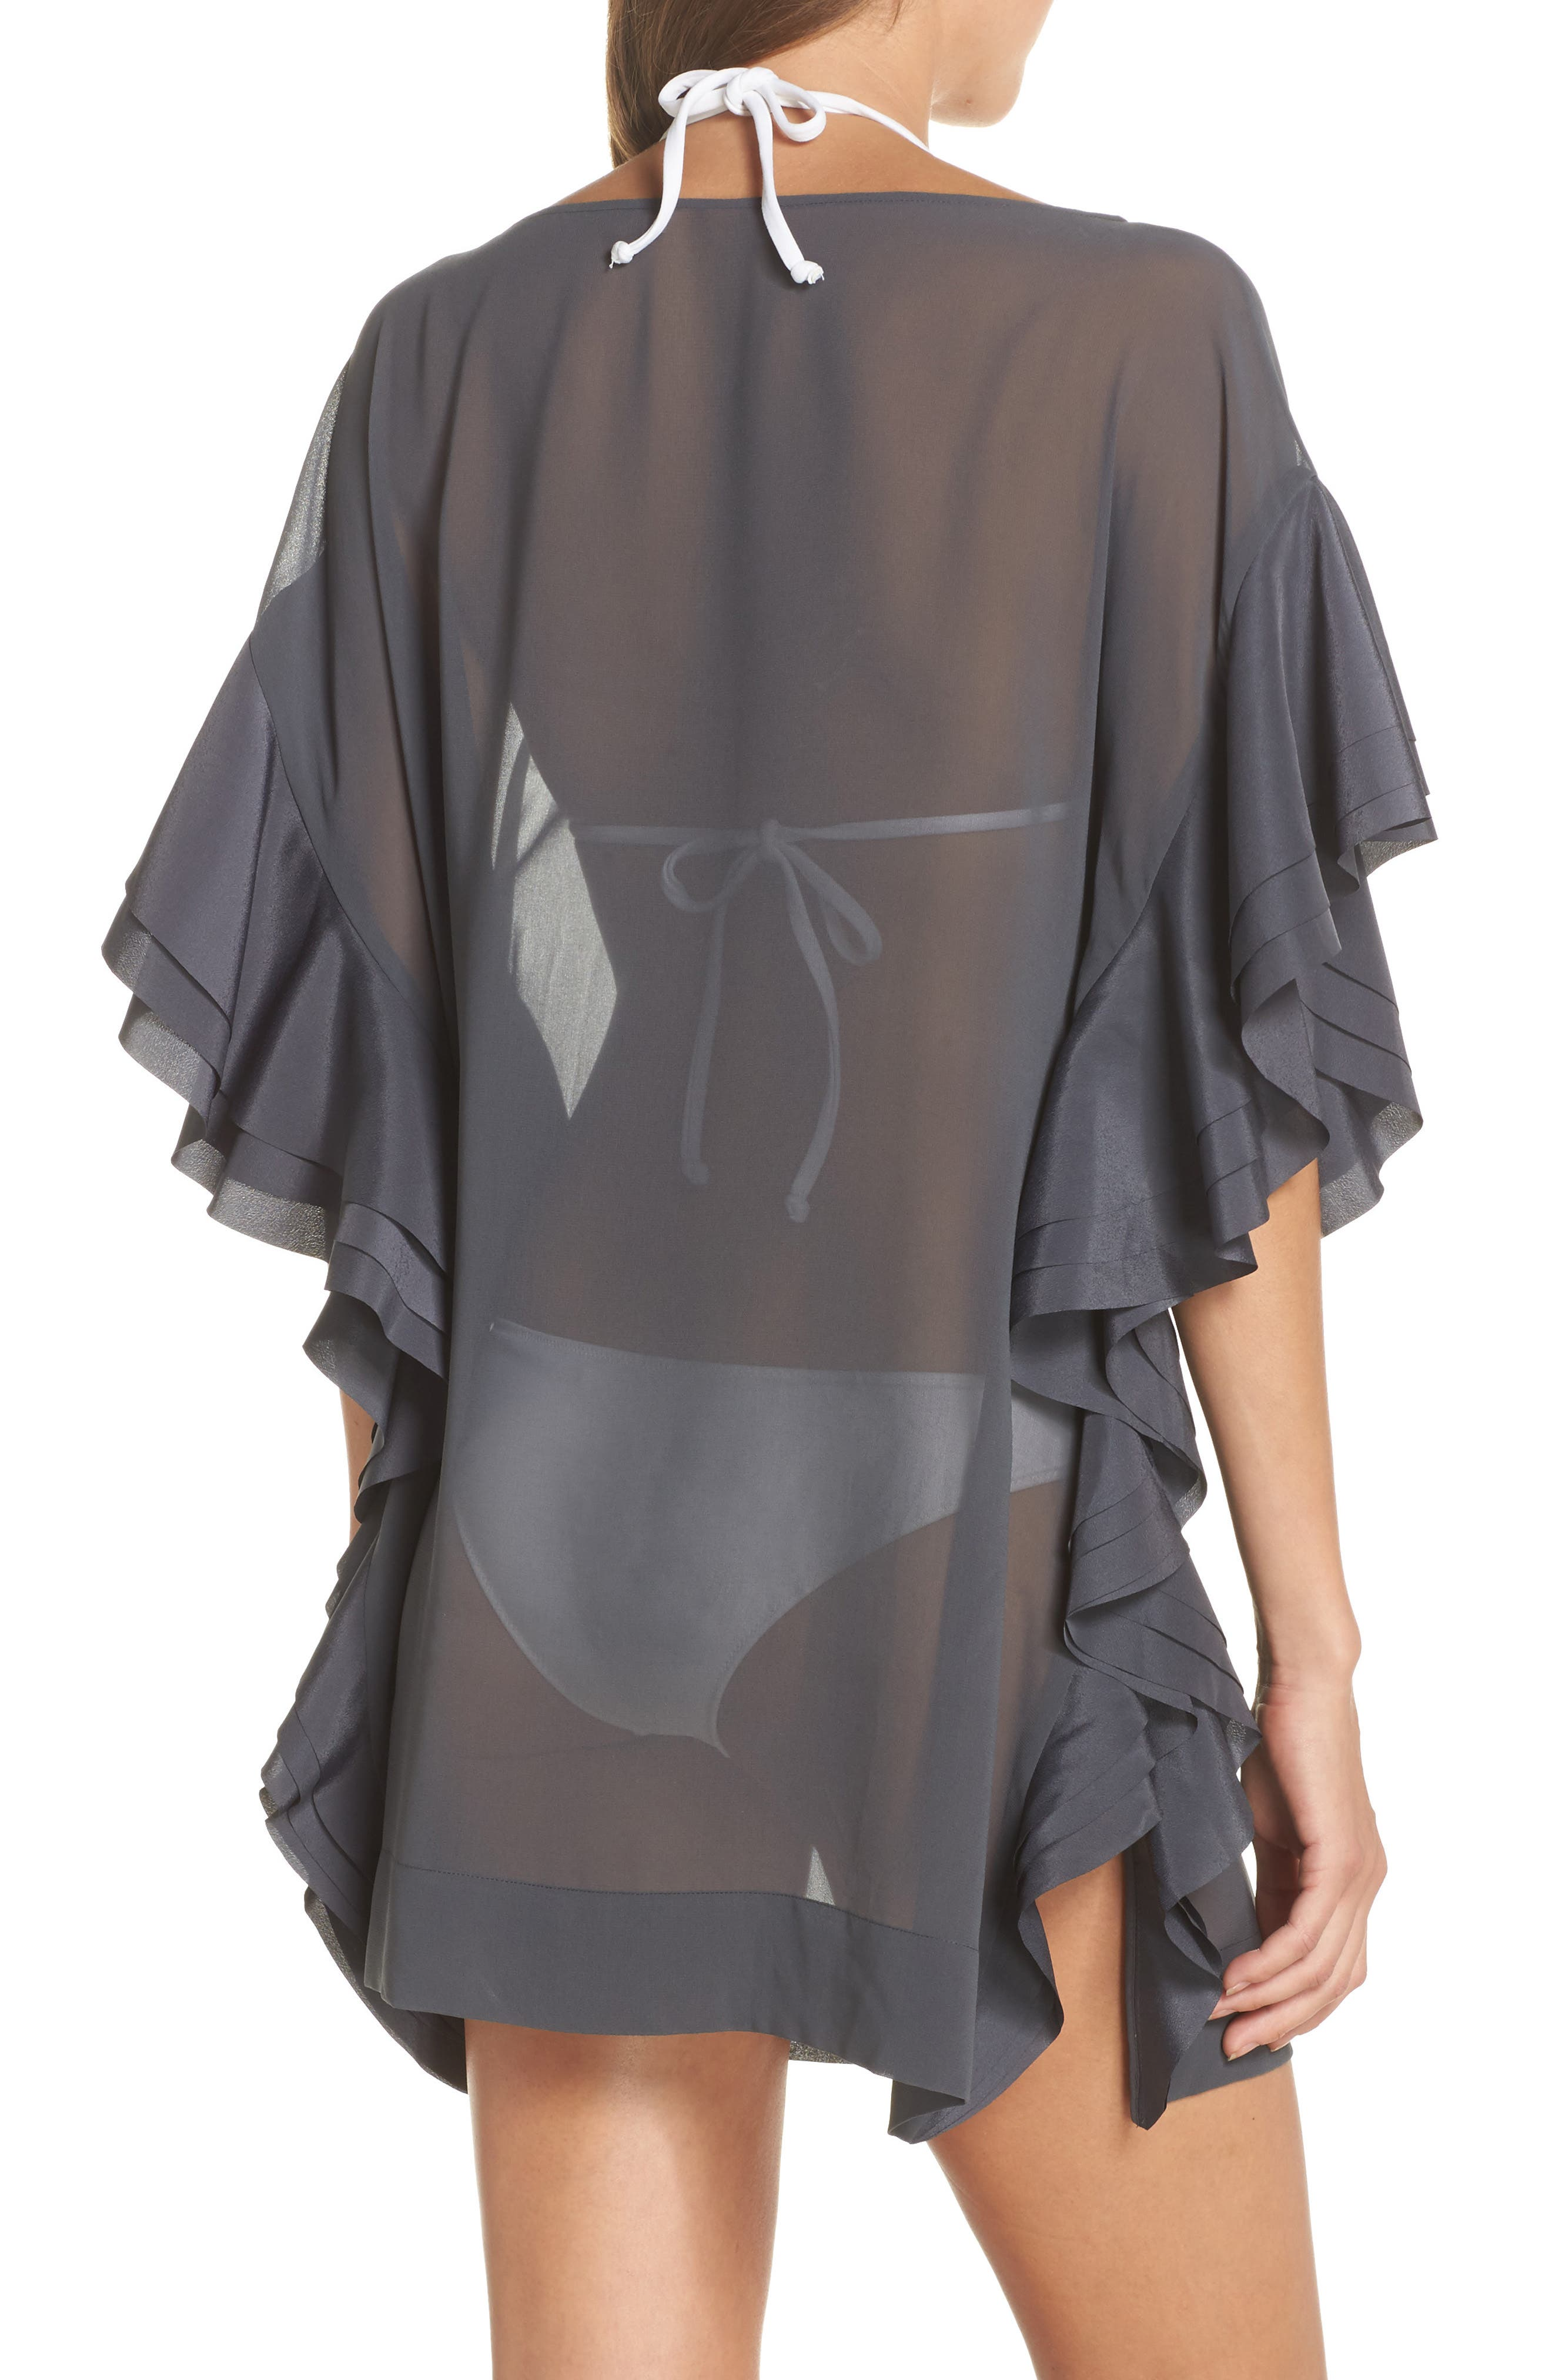 Ruffle Square Cover-Up Dress,                             Alternate thumbnail 2, color,                             030